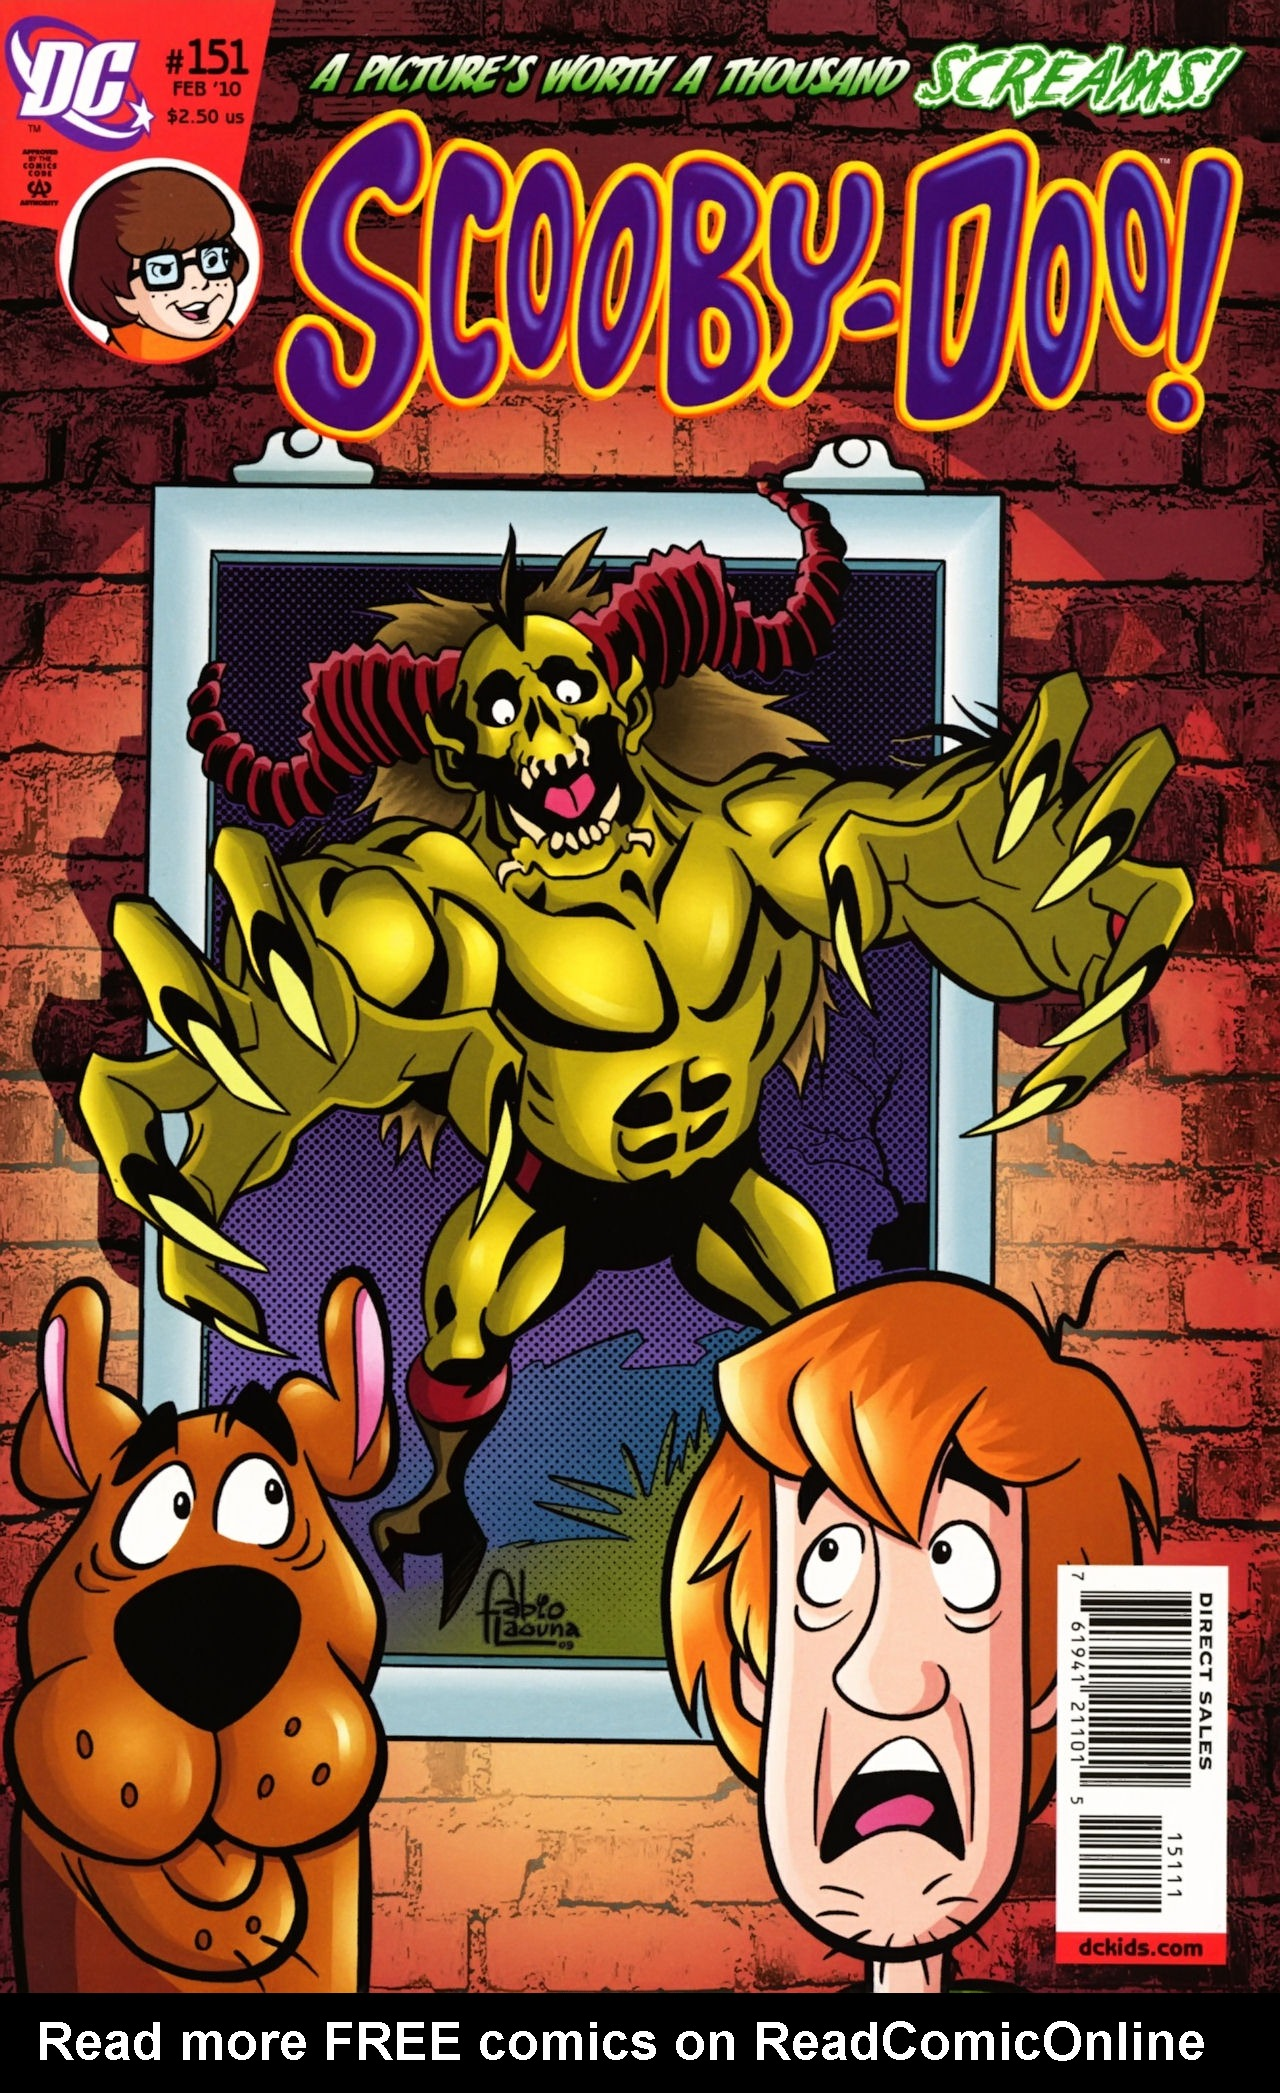 Read online Scooby-Doo (1997) comic -  Issue #151 - 1